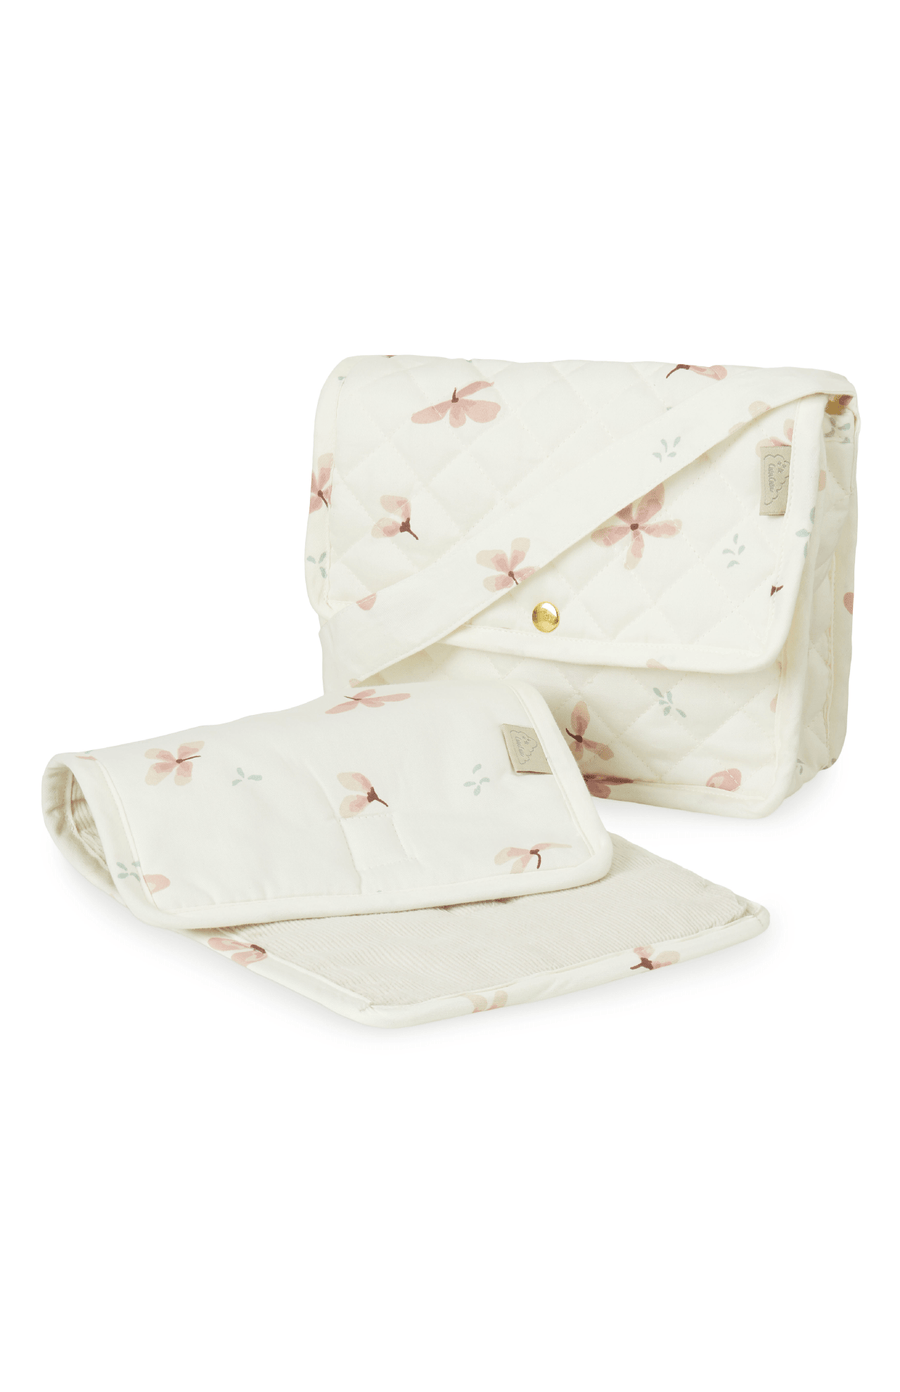 Cam Cam Copenhagen Dolls Changing Bag - Windflower Cream